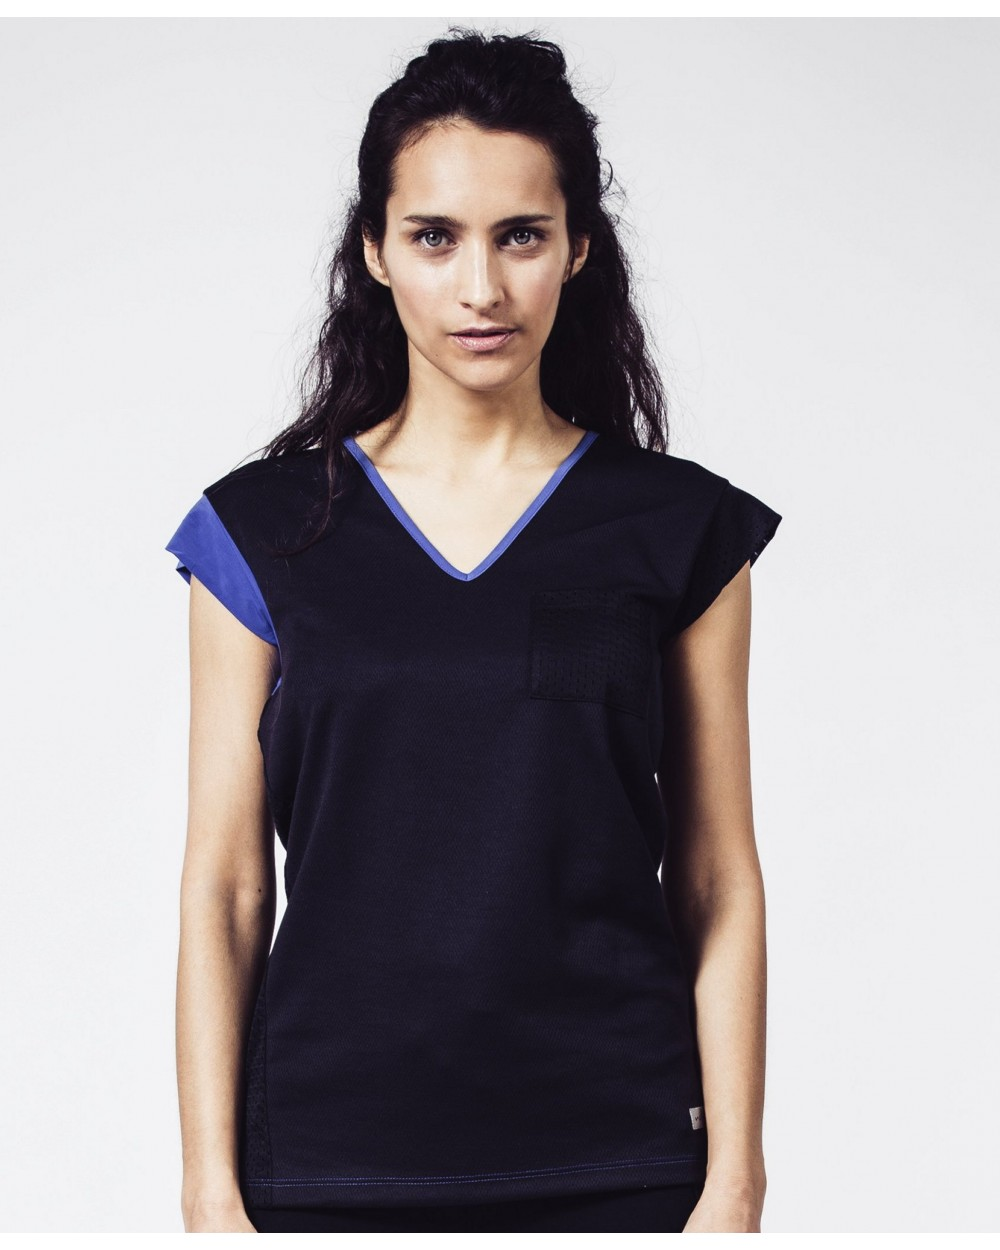 black-running-t-shirt-for-women-philou.jpg